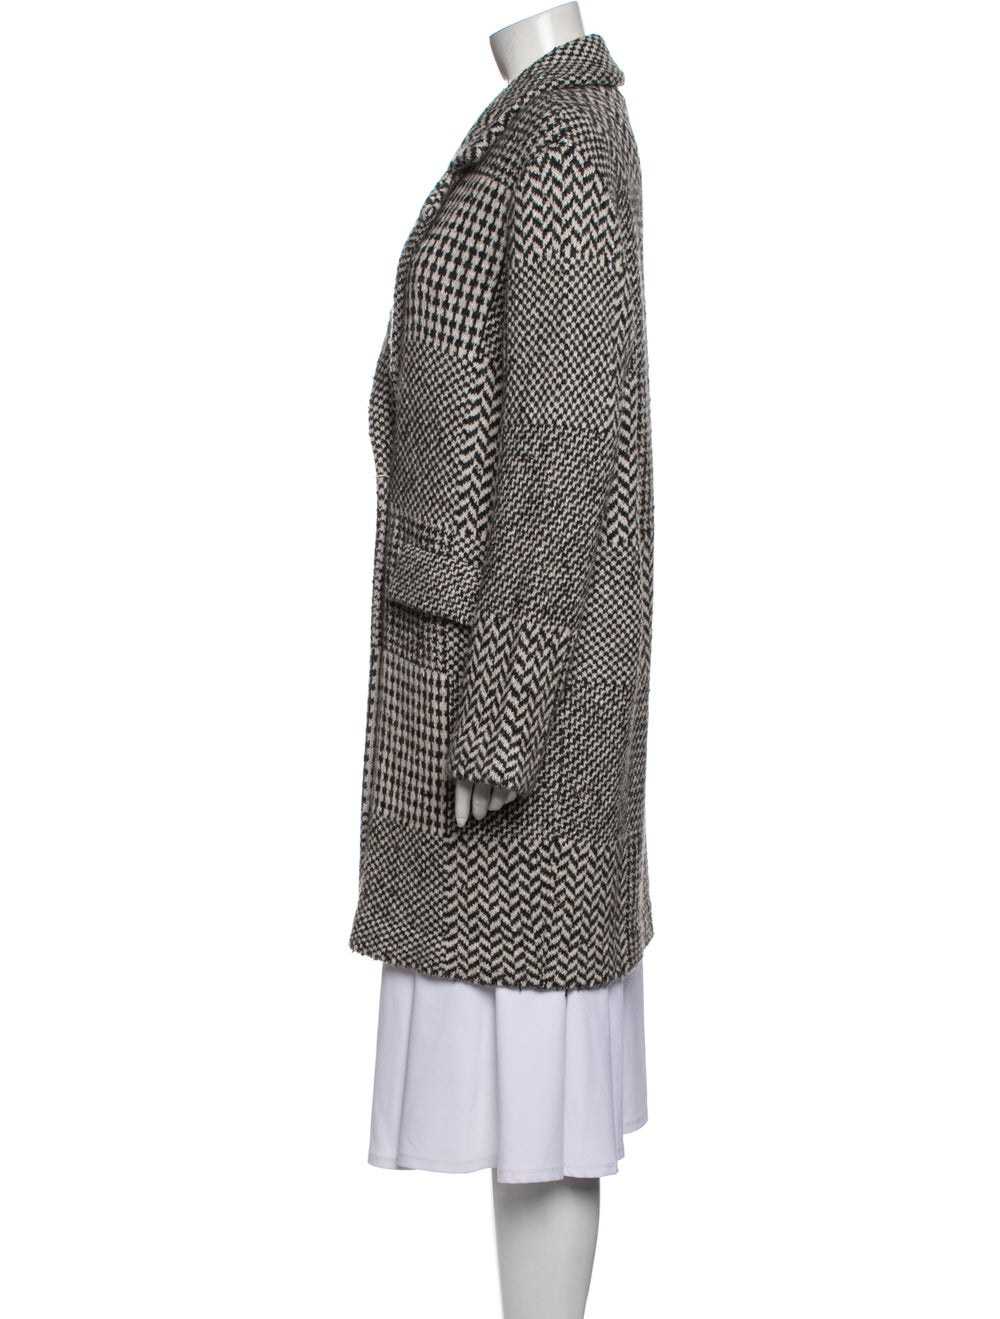 Anne Claire Tweed Pattern Peacoat Grey - image 2